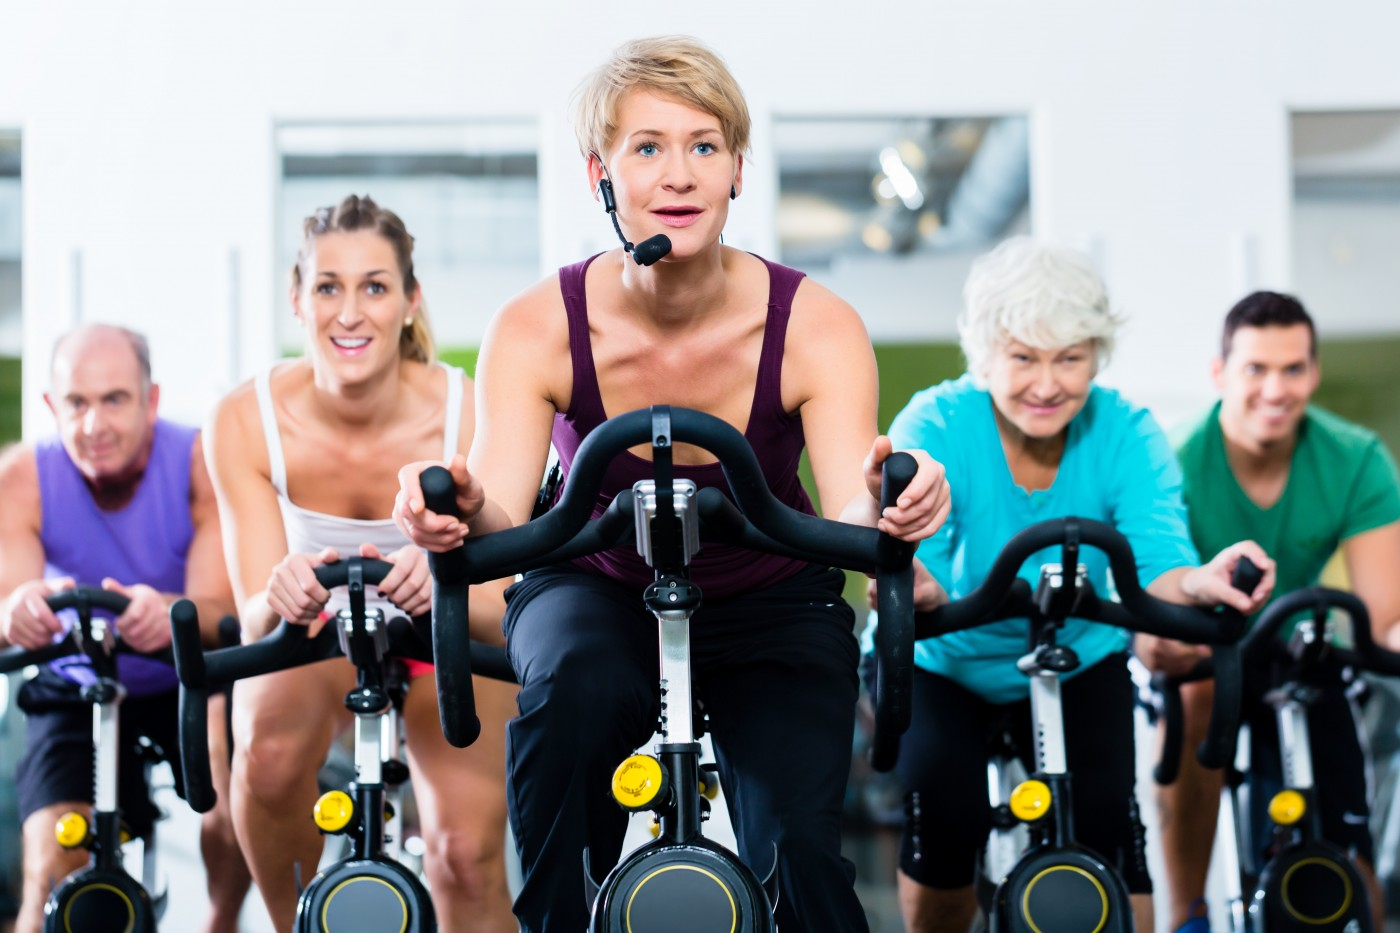 Study Supports High Intensity Exercise to Improve Muscle Condition in MS Patients